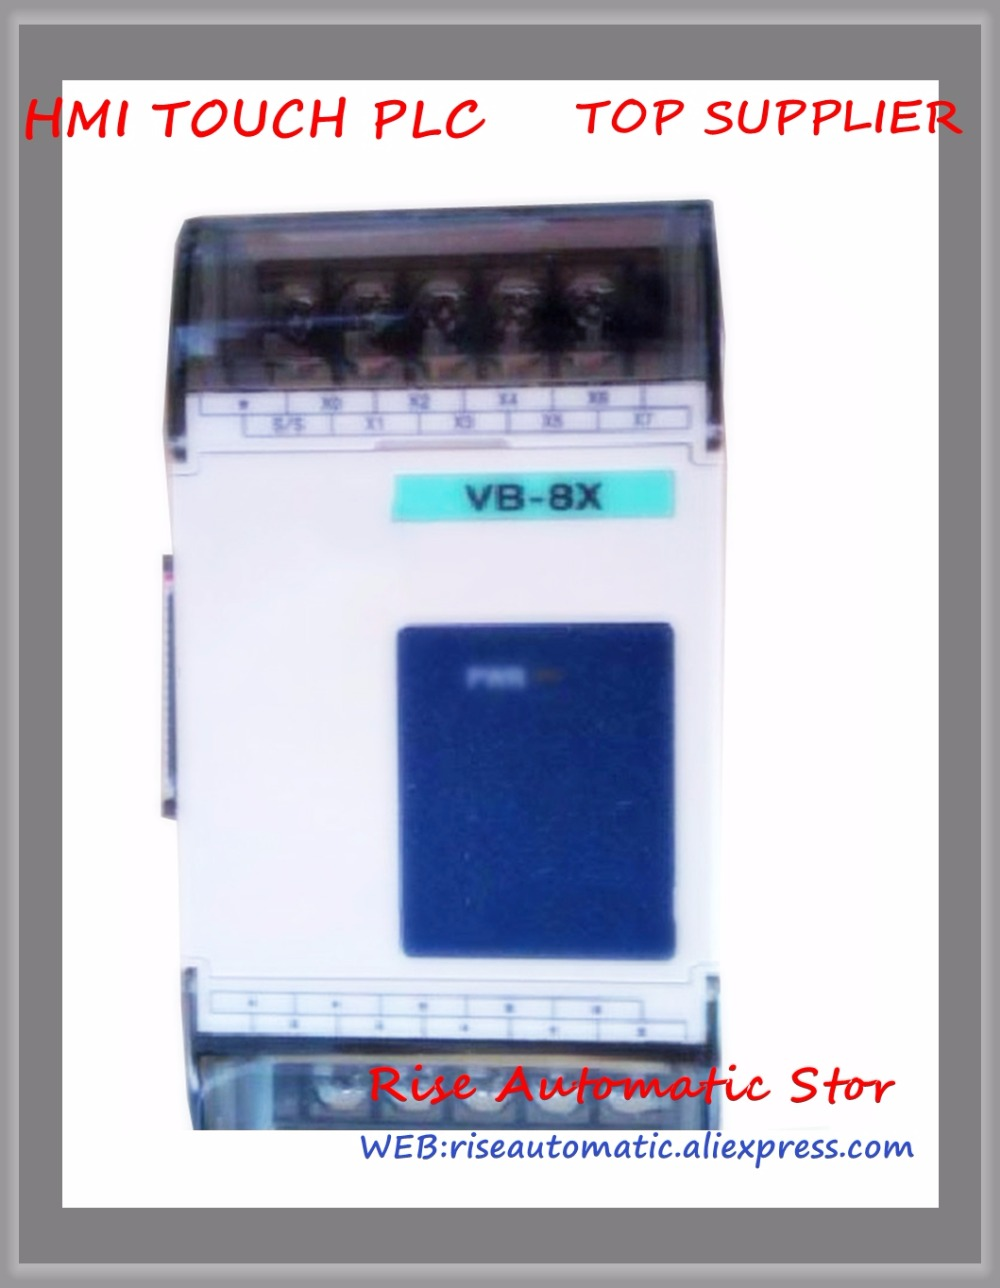 купить VB-8X PLC New Original 24VDC 8 point input Expansion Module по цене 4921.11 рублей